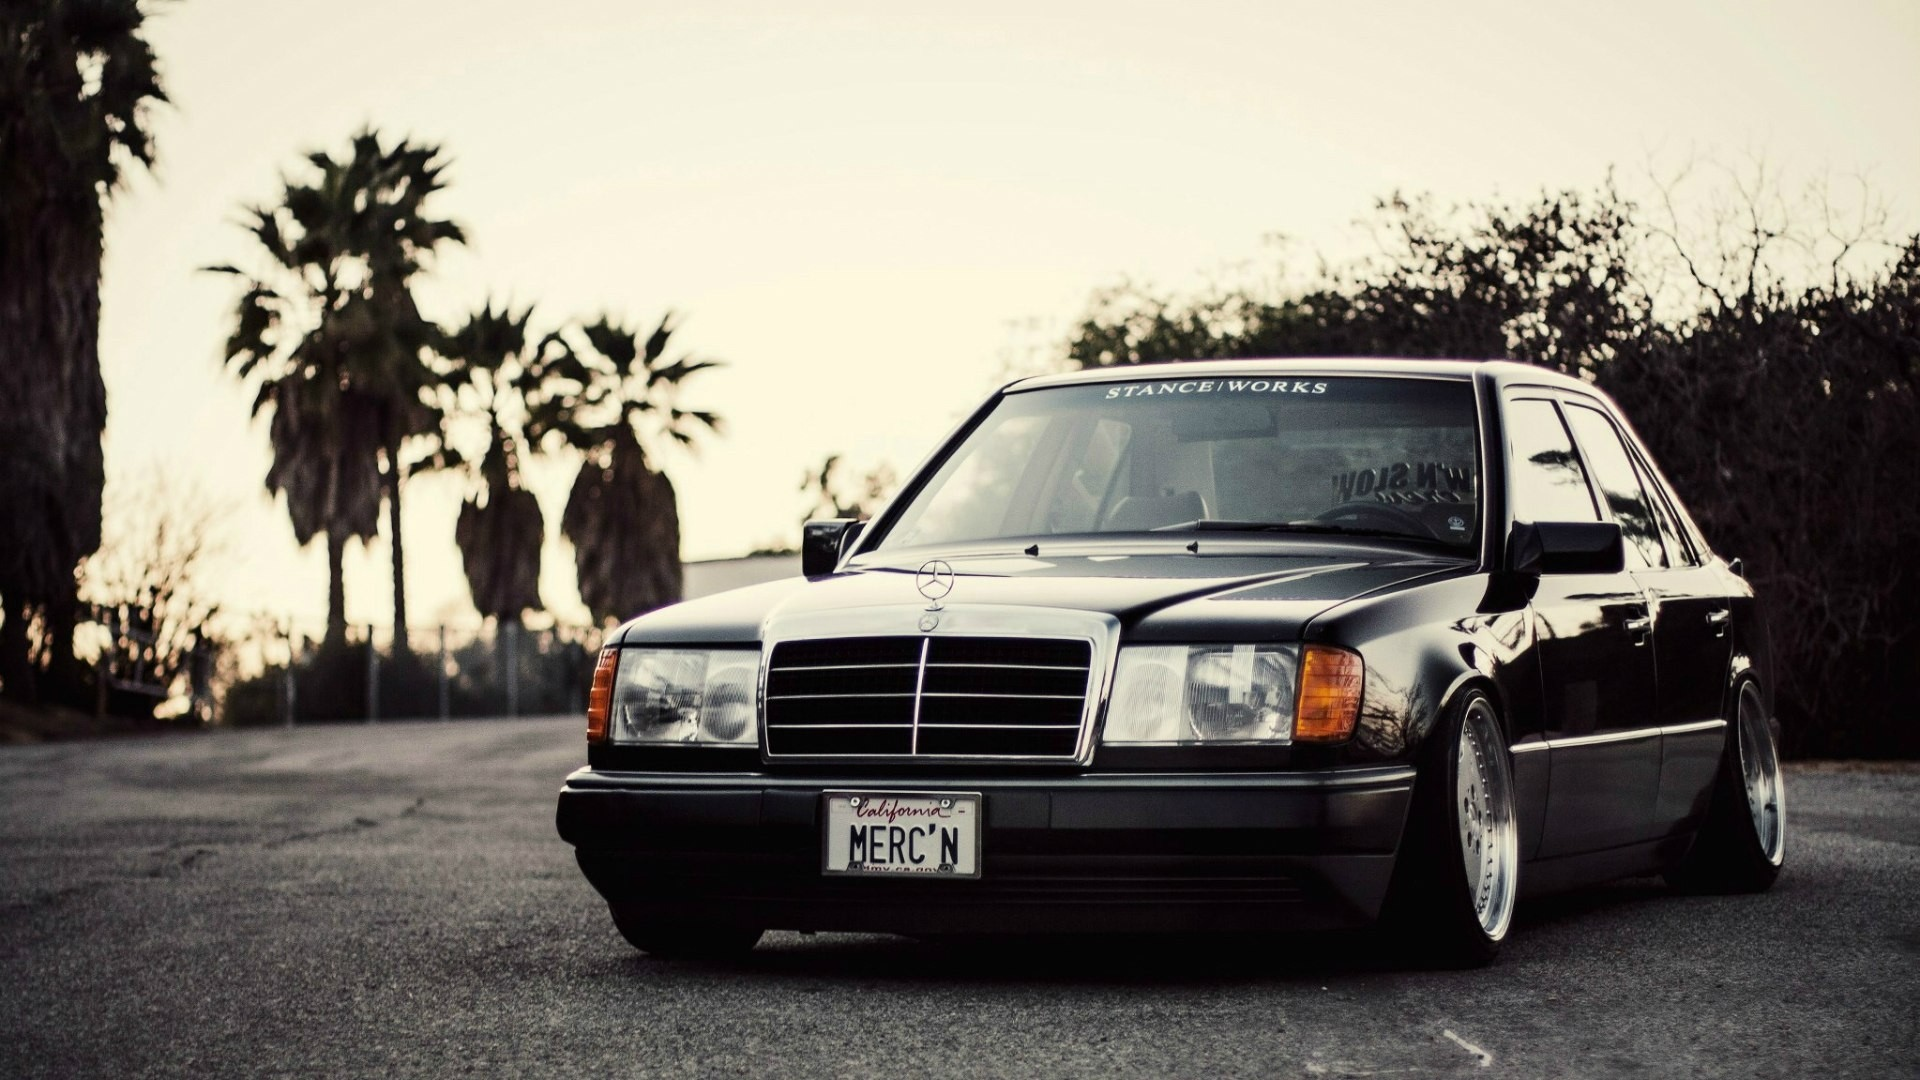 Mercedes benz tuning wallpaper 1920x1080 64586 for Mercedes benz tuning